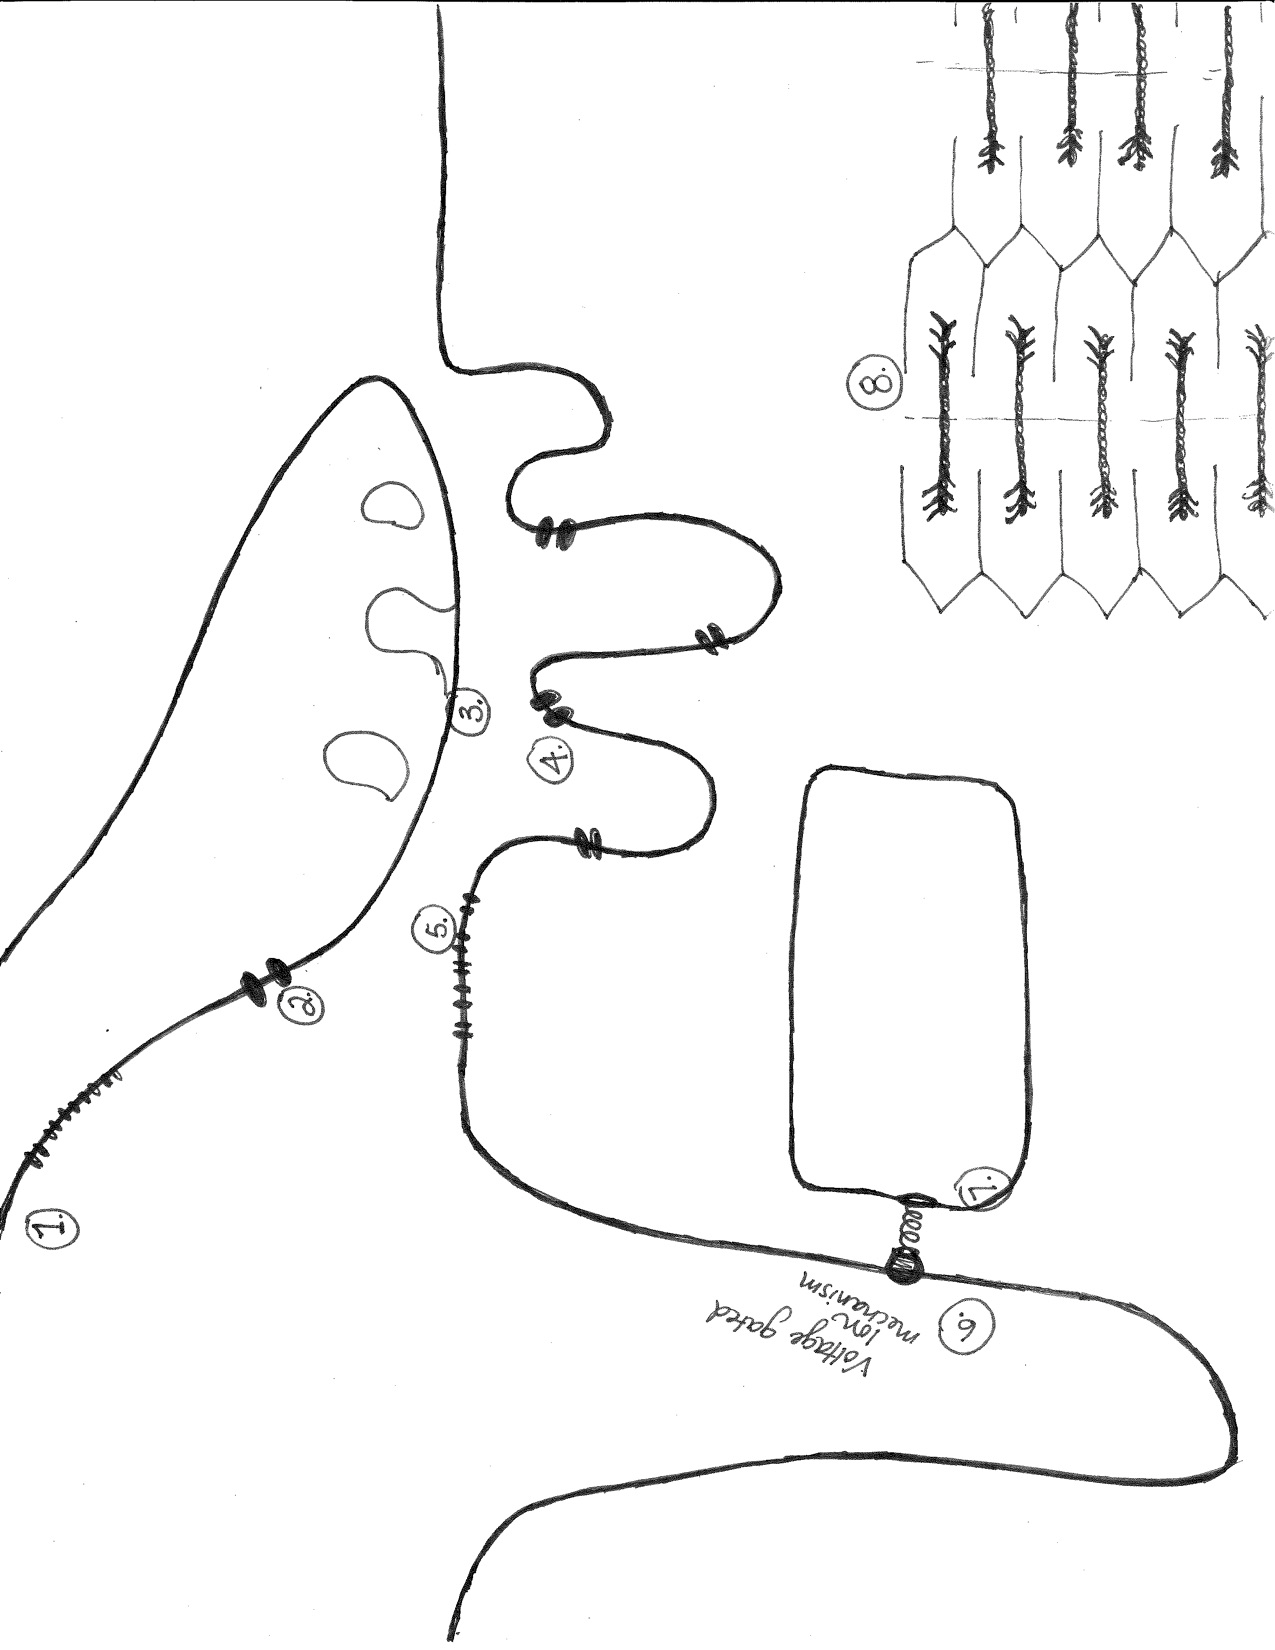 Solved: Attached Is A Sketch Of Neuromuscular Junction And